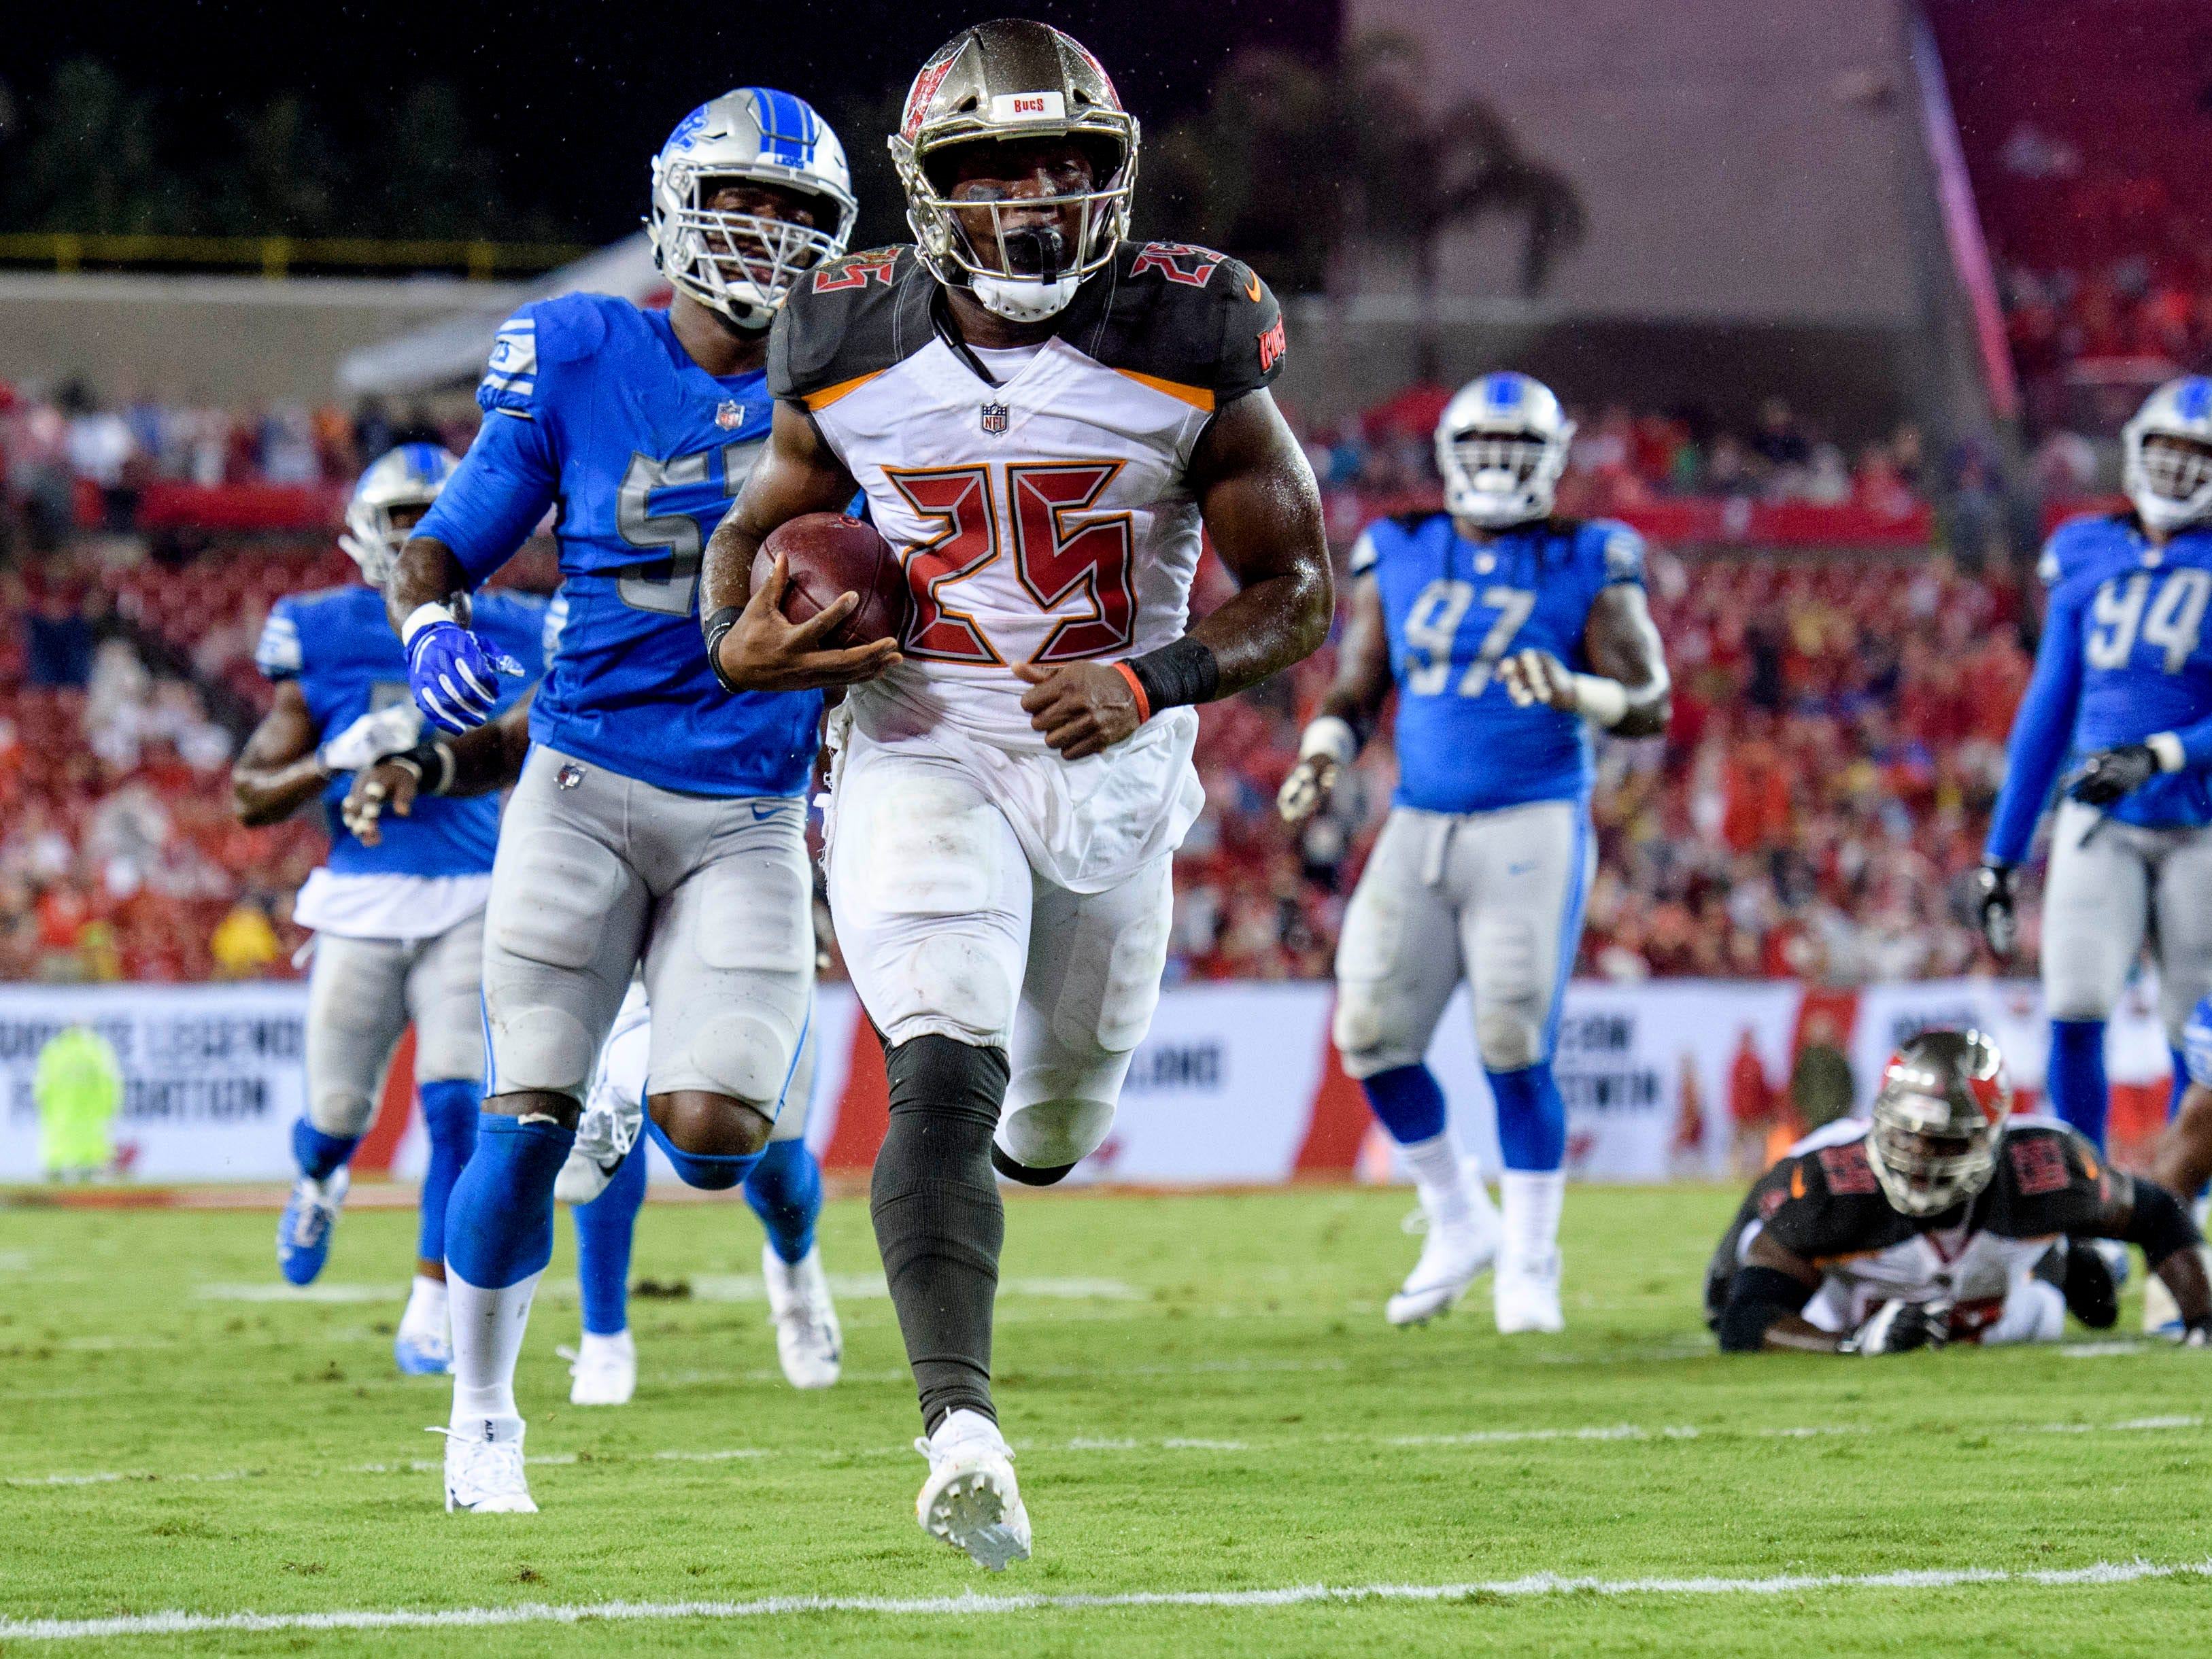 Tampa Bay Buccaneers corner back De'Vante Harris (25) runs the ball in for a touchdown during the first half of the game against the Detroit Lions at Raymond James Stadium.